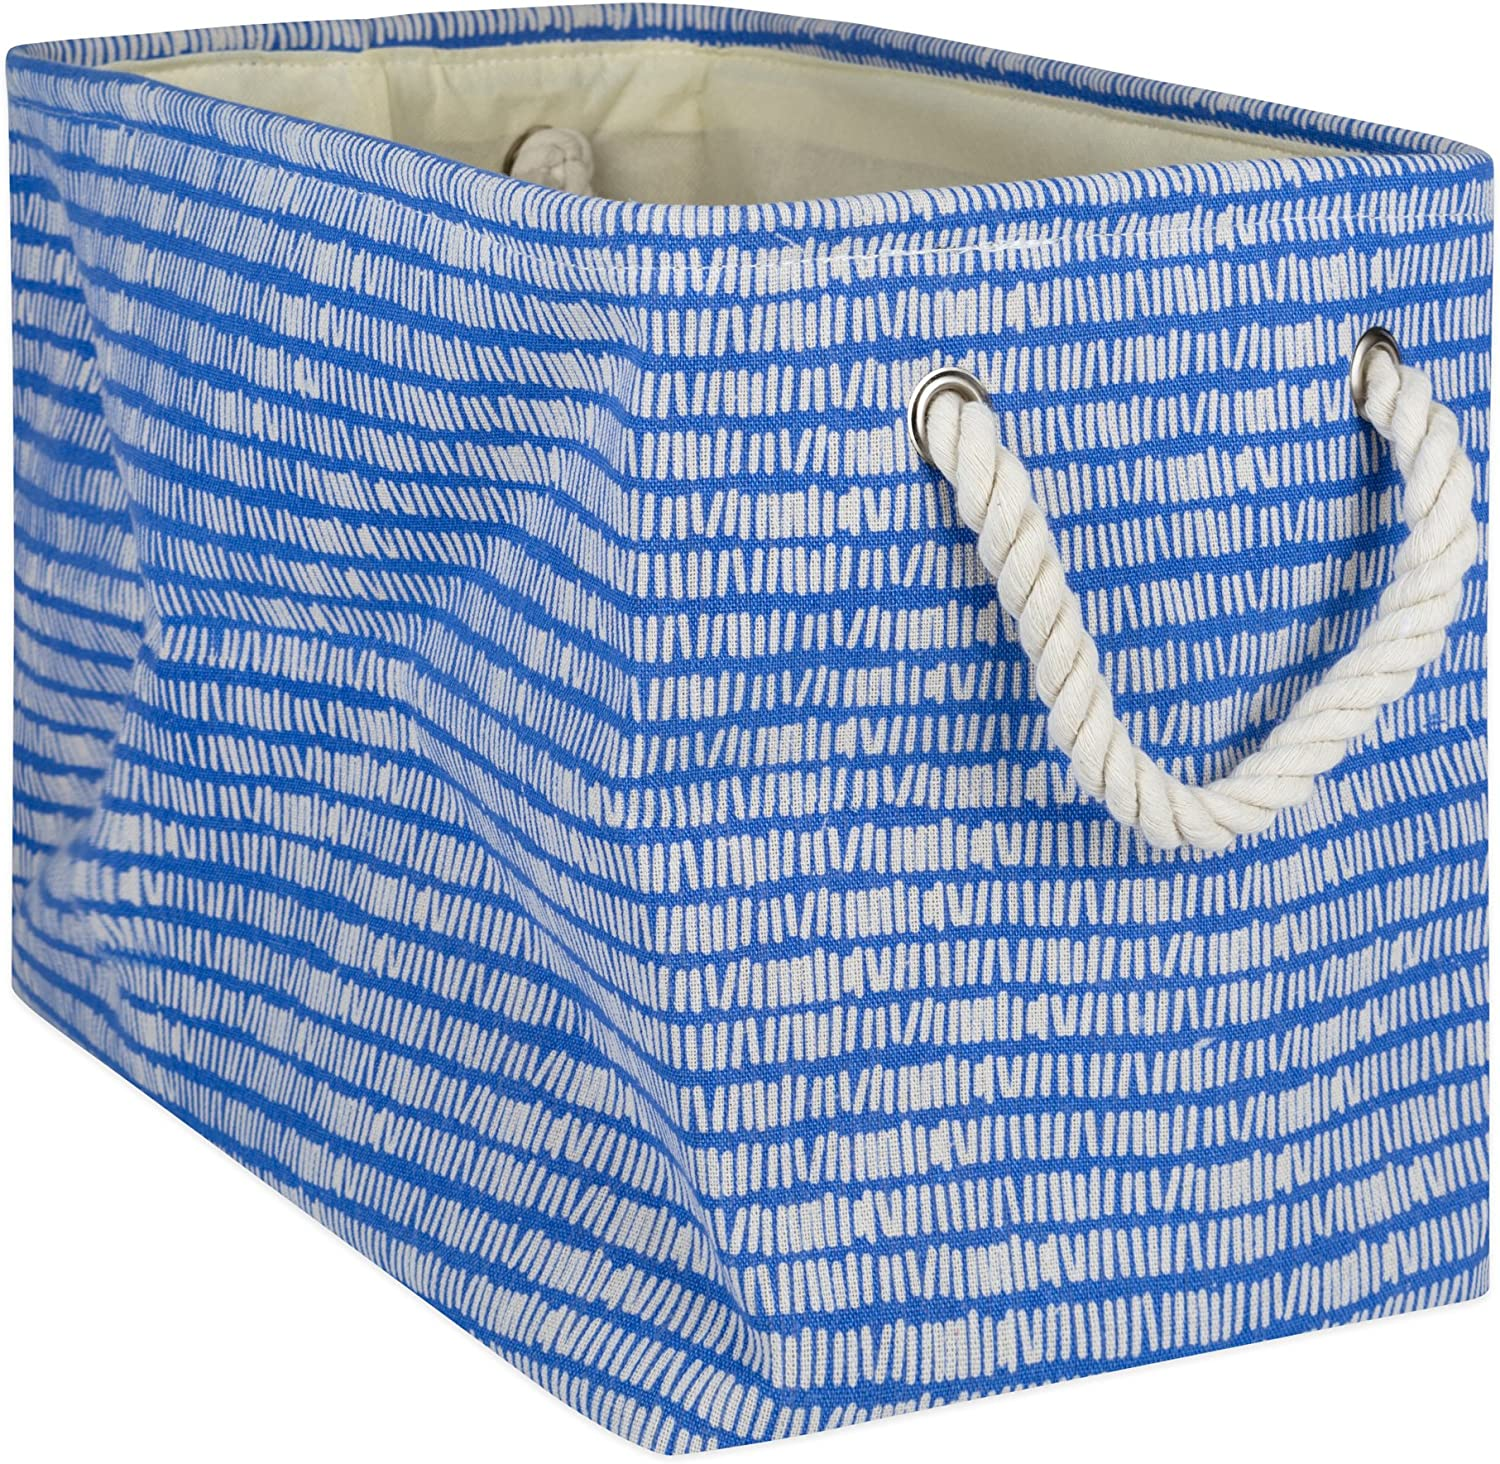 DII Collapsible Polyester Storage Basket or Bin with Durable Cotton Handles, Home Organizer Solution for Office, Bedroom Closet, Toys, Laundry, Large, Bright Blue